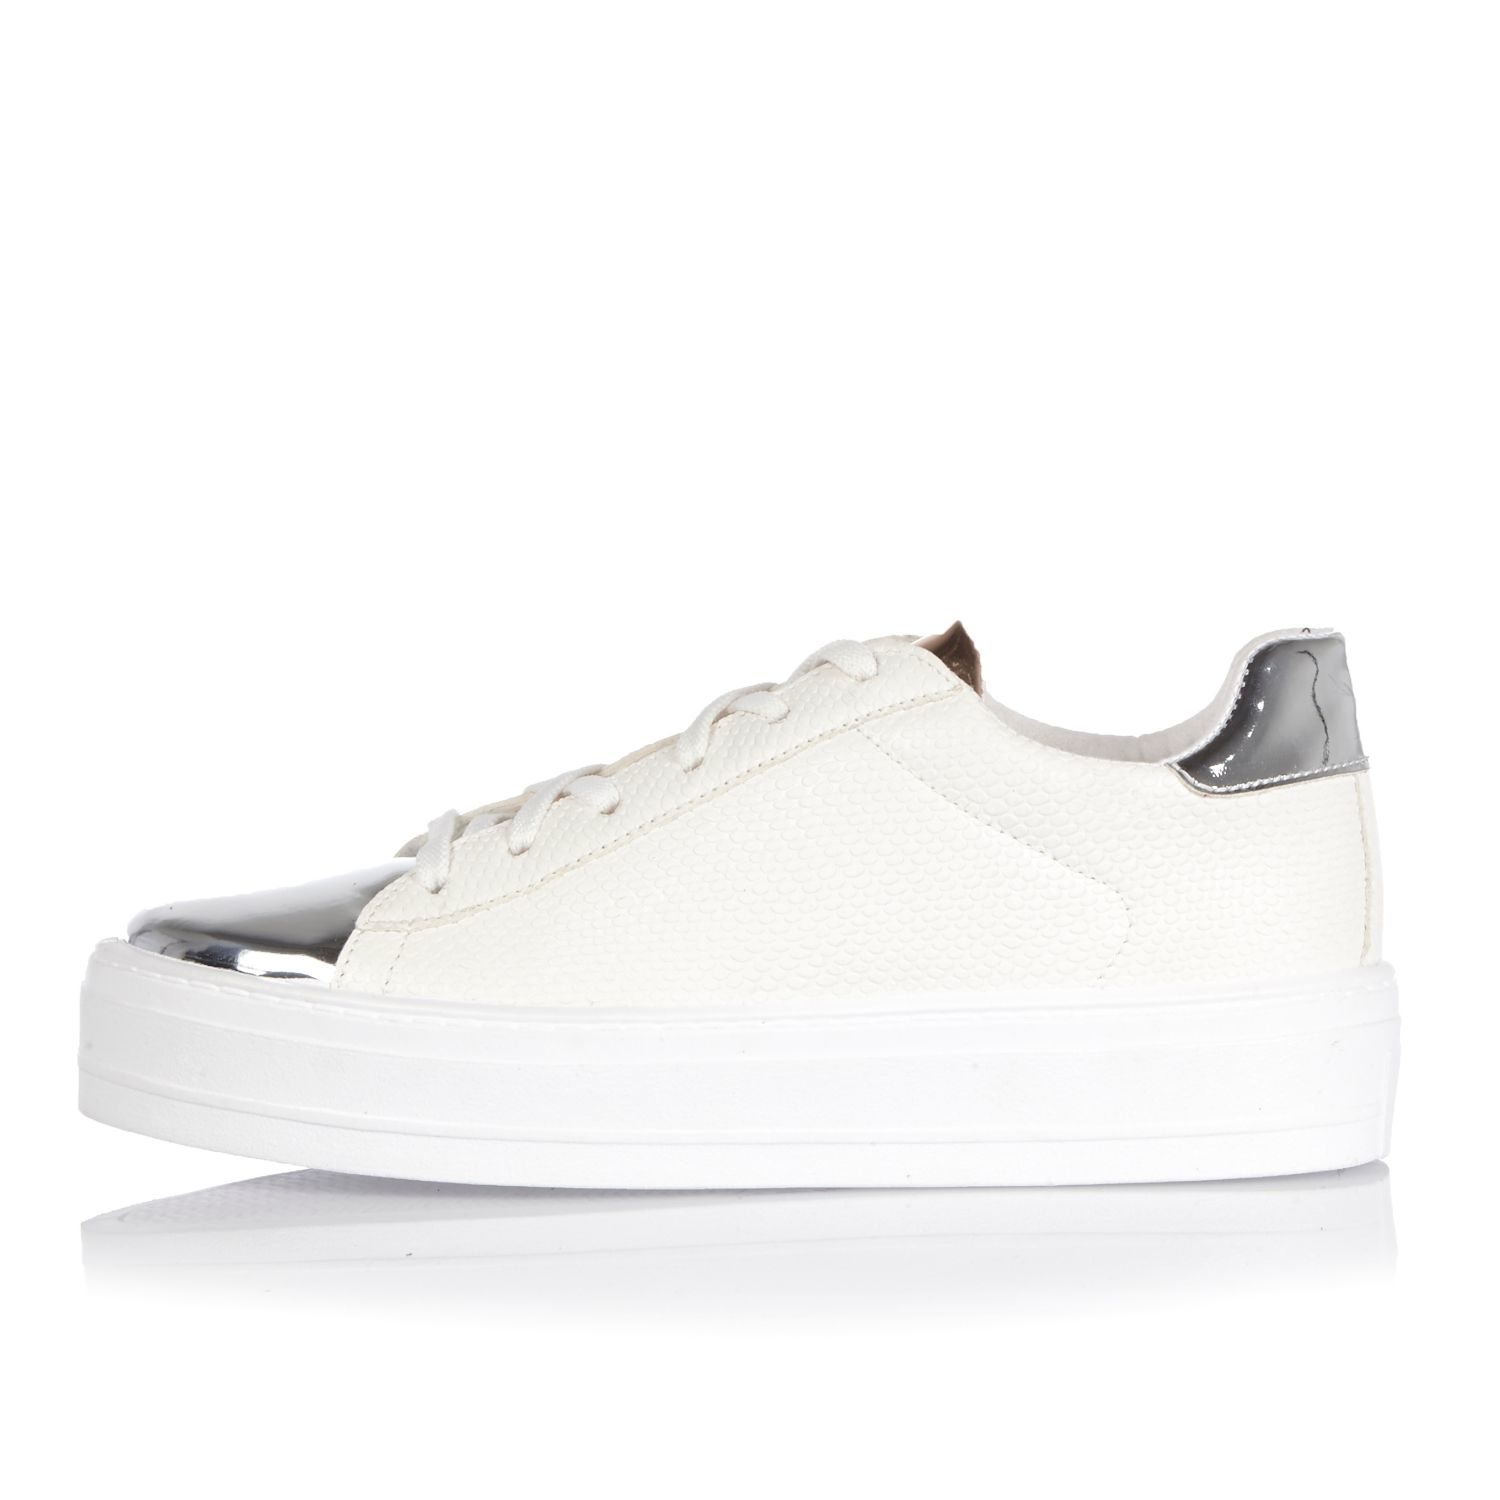 9024f8b3e07 River Island White Metallic Trim Platform Trainers in White - Lyst